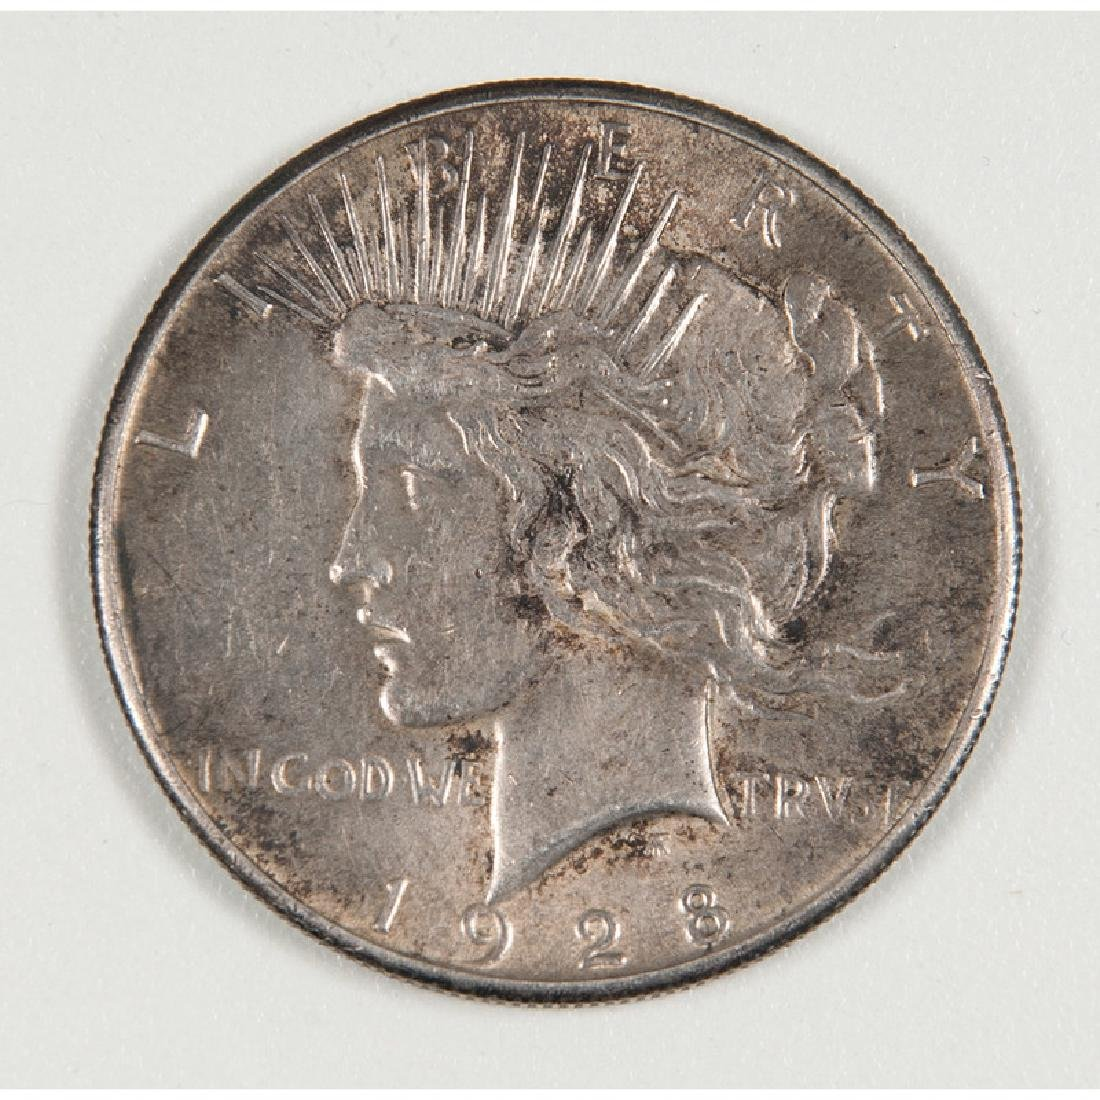 United States Peace Silver Dollar 1928